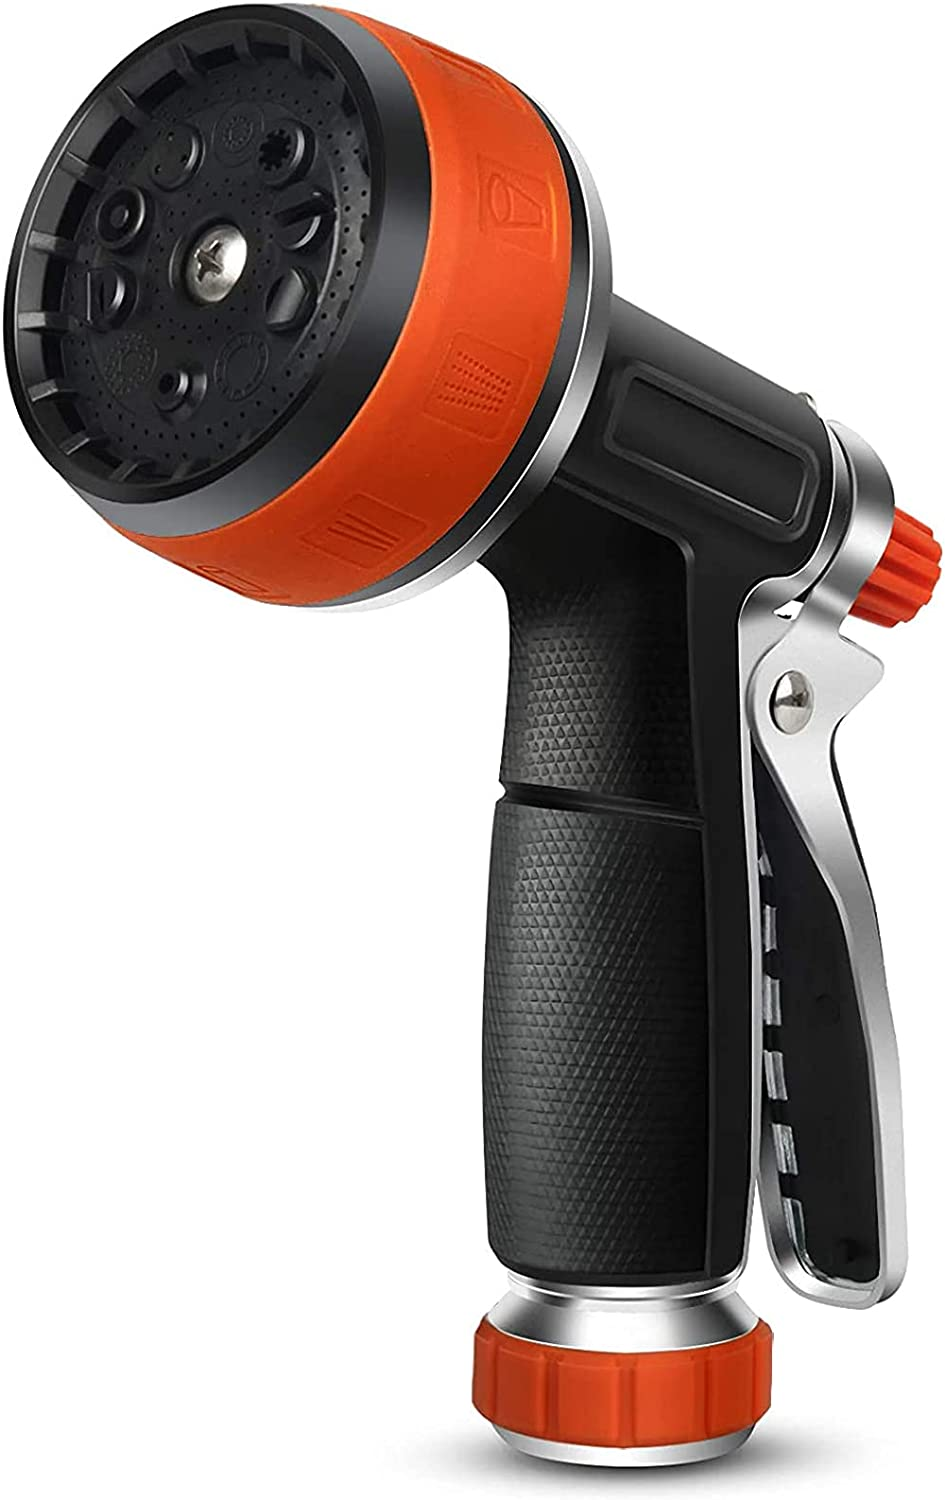 Garden Hose Nozzle - Water Hose Spray Nozzle, Aluminum Alloy + Rubber, 10 Sprayers Patterns for Watering Plants, Lawn & Garden, Washing Cars, Showering Pets & Outdoor Fun (Orange)